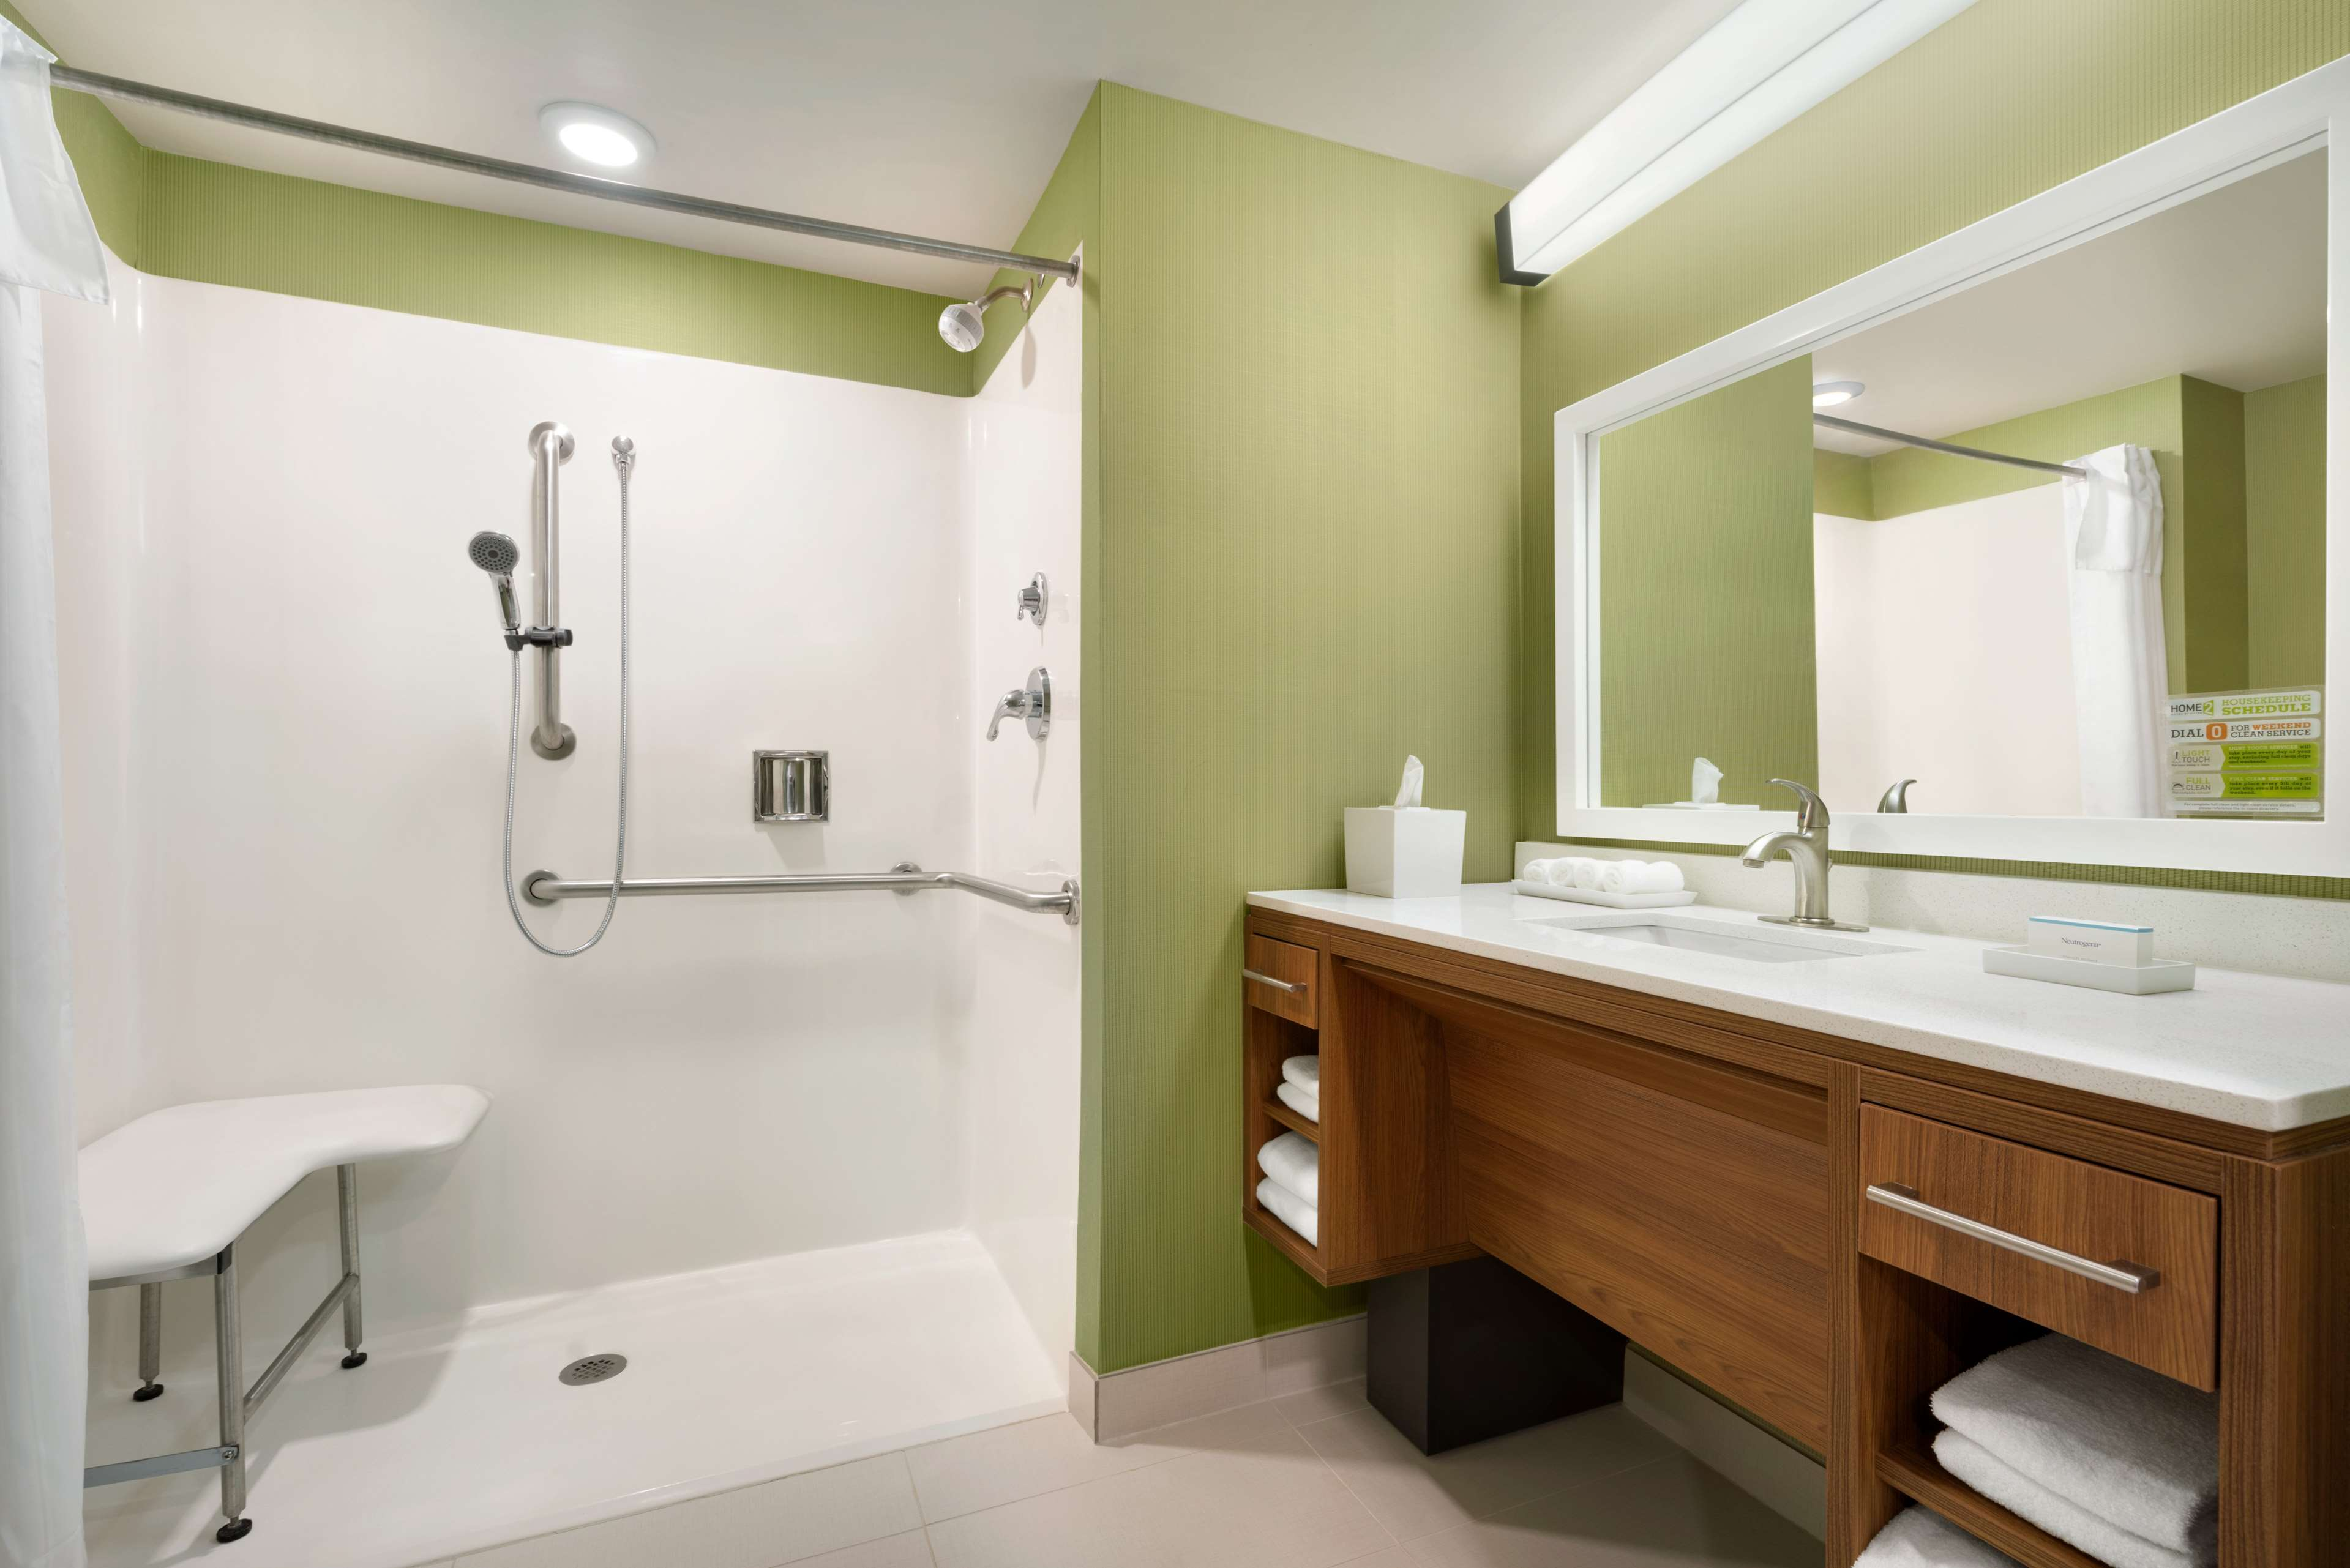 Home2 Suites by Hilton Roanoke image 26